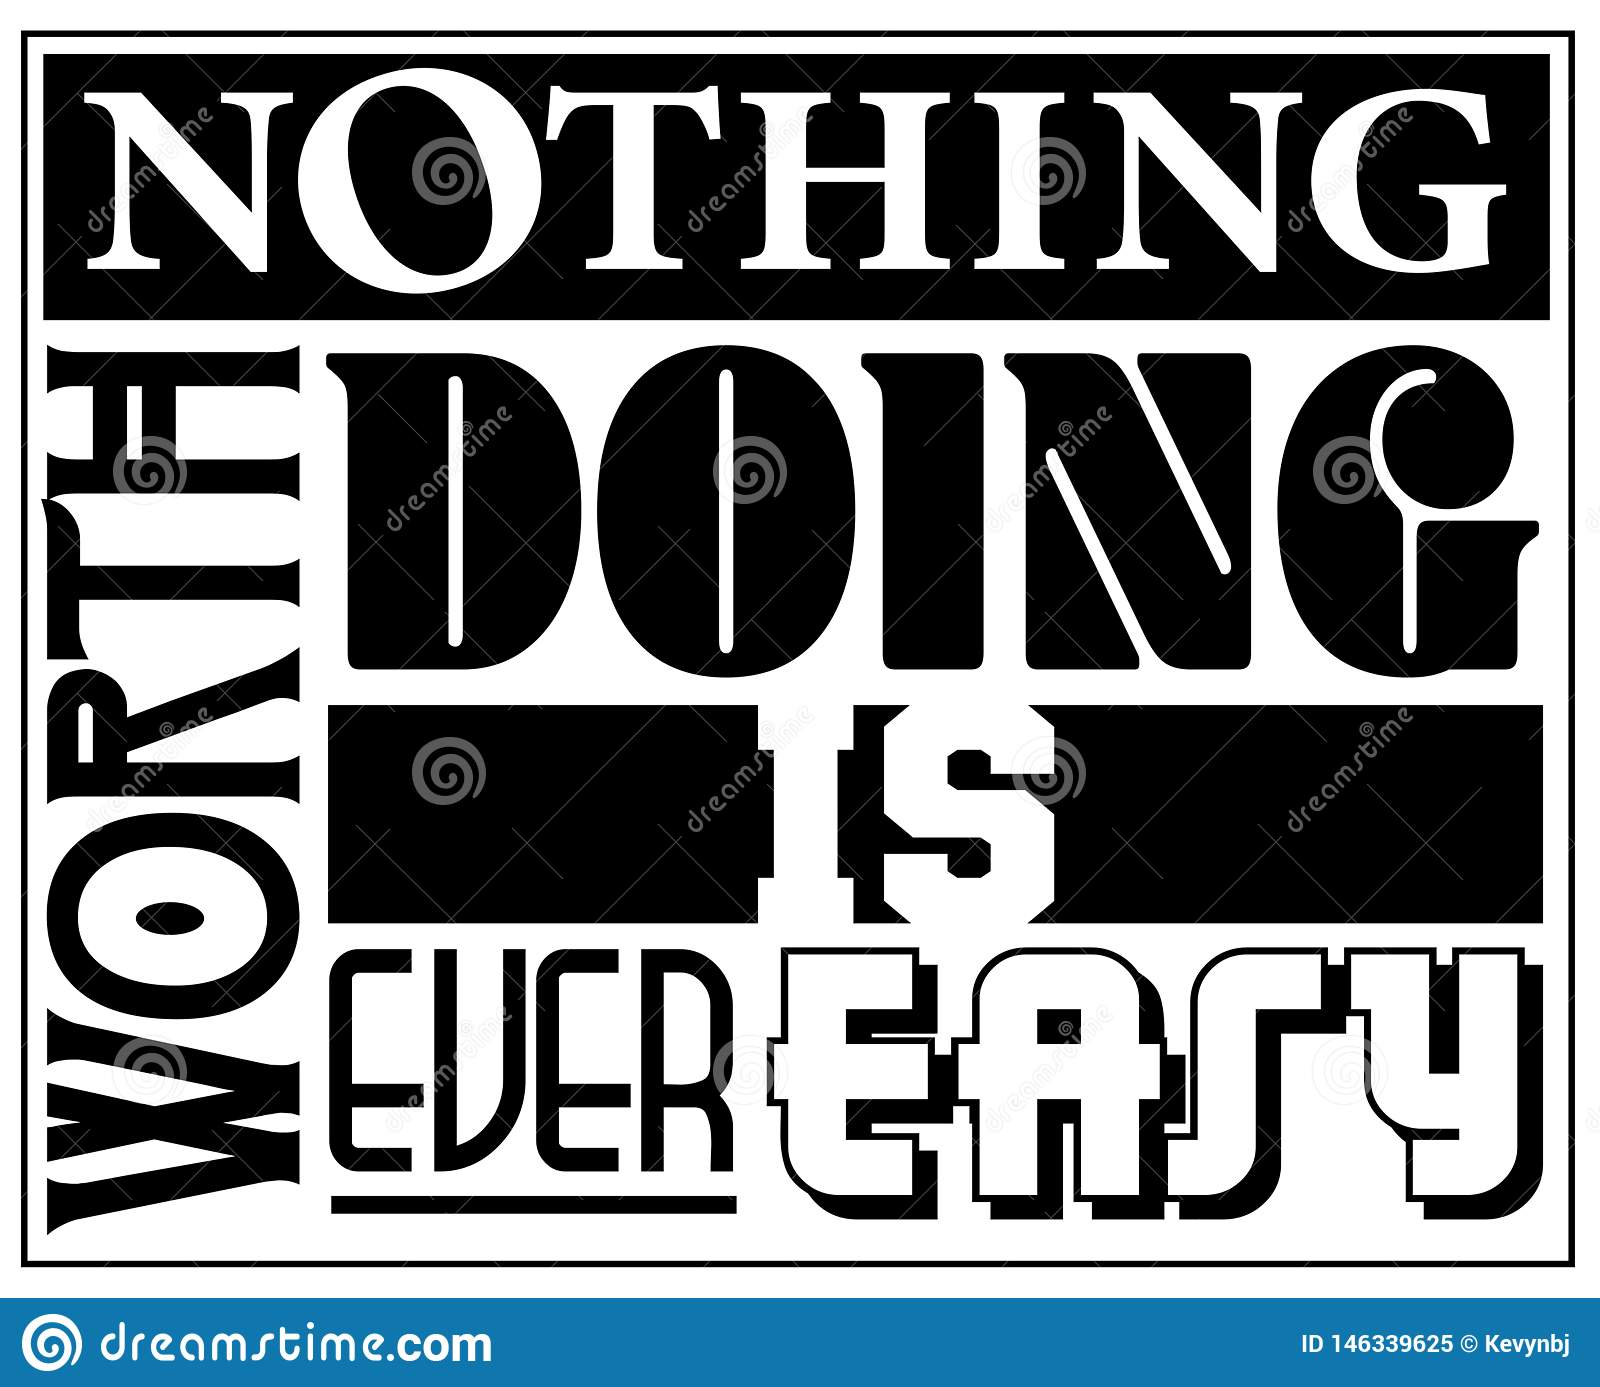 Nothing Worth Doing is ever Easy Sign Logo Art